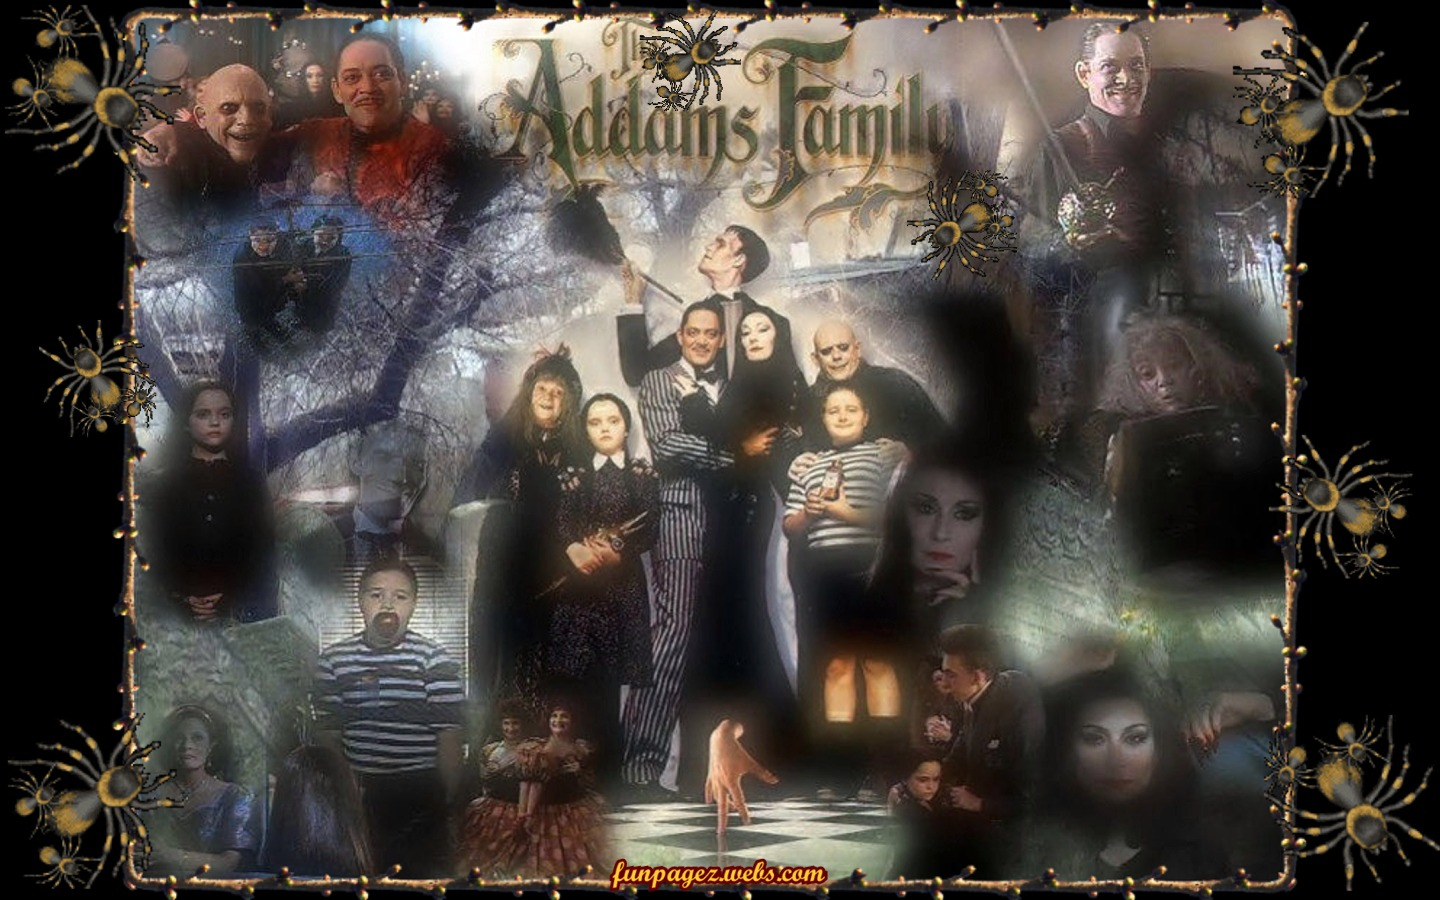 Addams Family 90s Wallpaper by Mardis Funpagez Featuring The Dark 1440x900